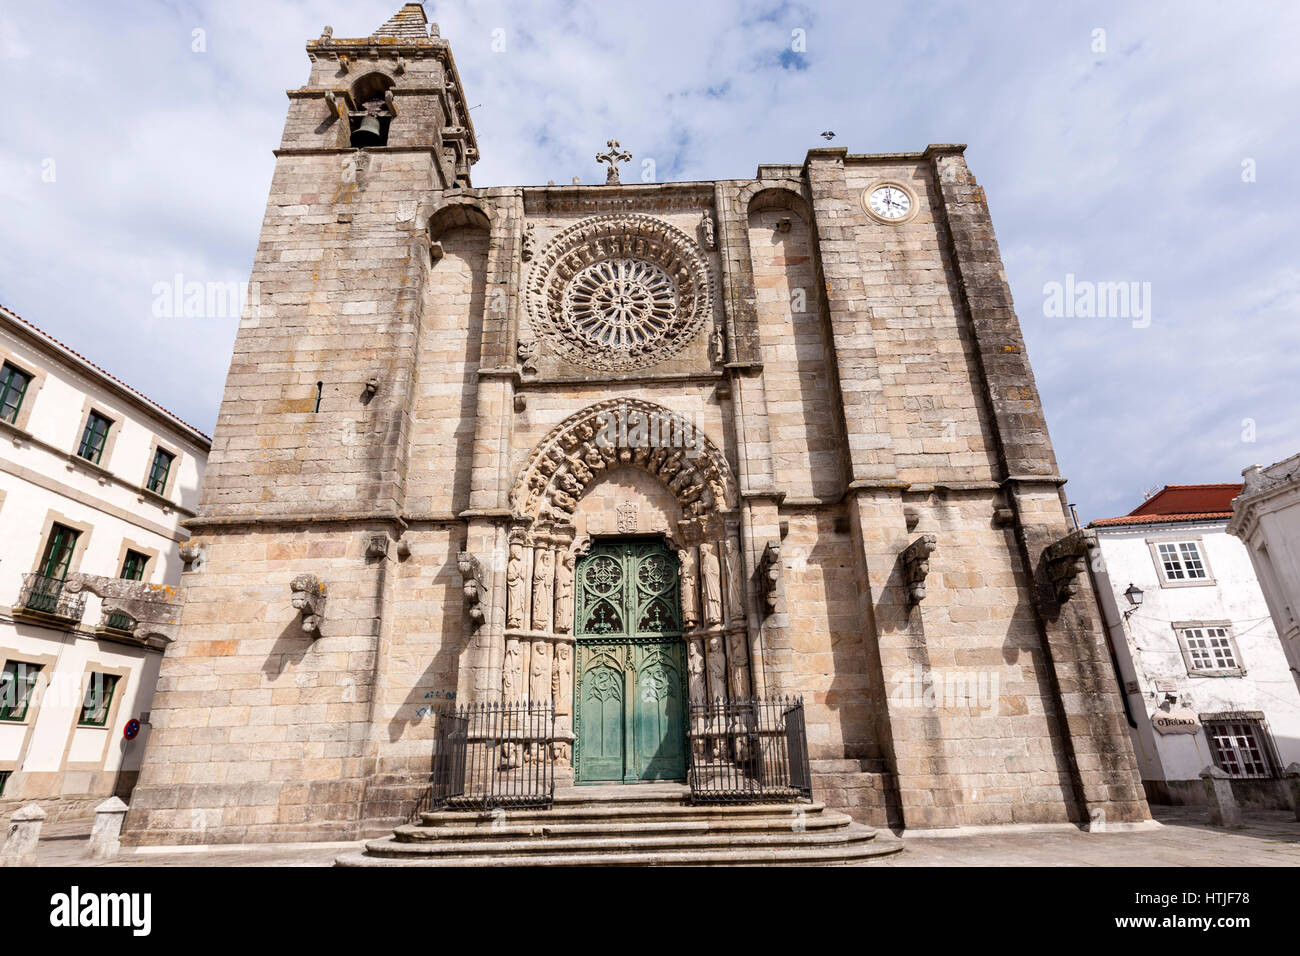 Iglesia de San Martín, located in la plaza del Tapal. Noia, Galicia, Spain - Stock Image